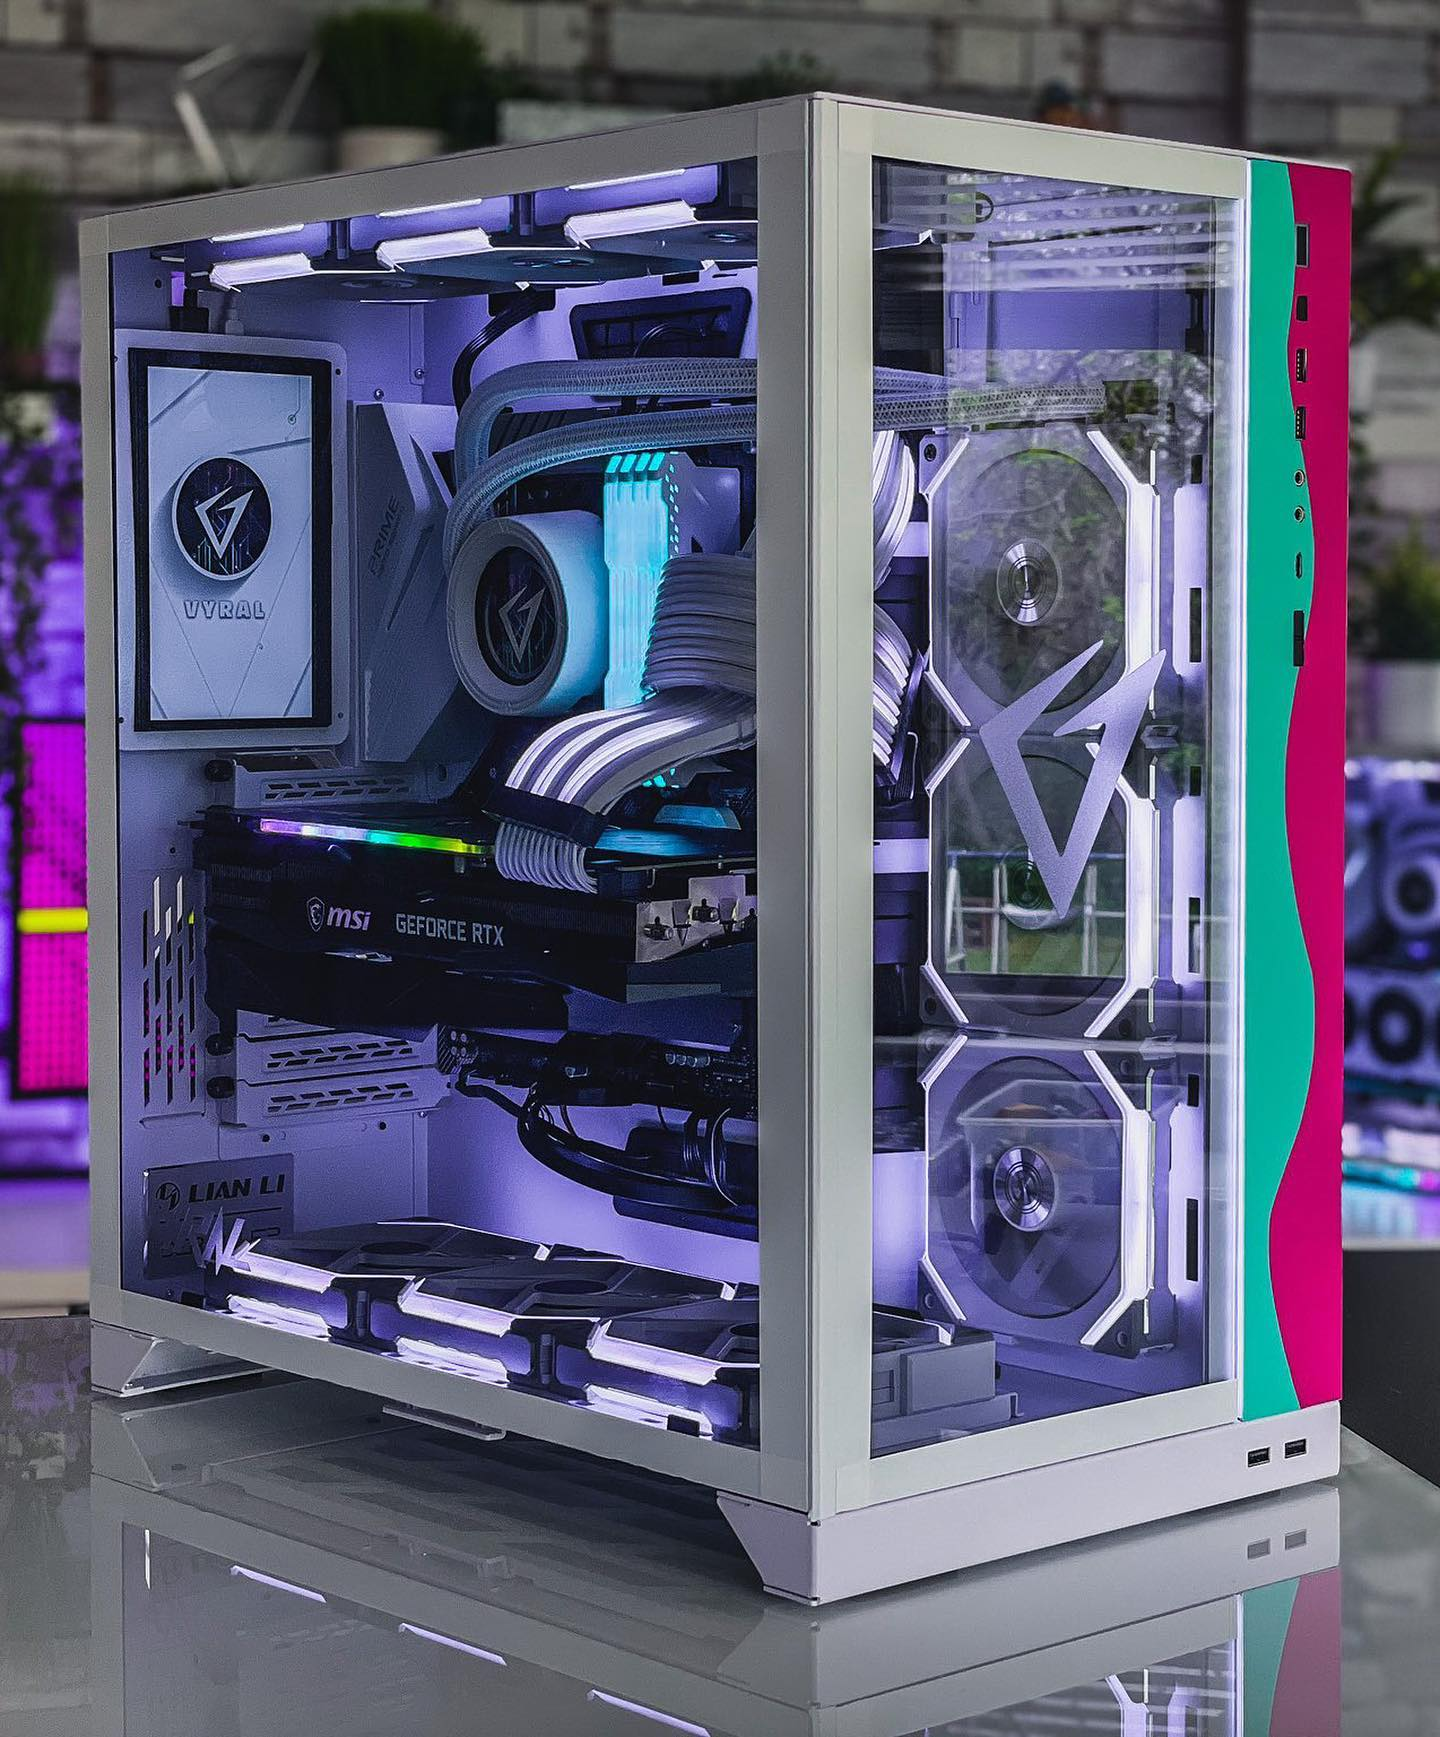 Vyral is also known for their custom PC building service